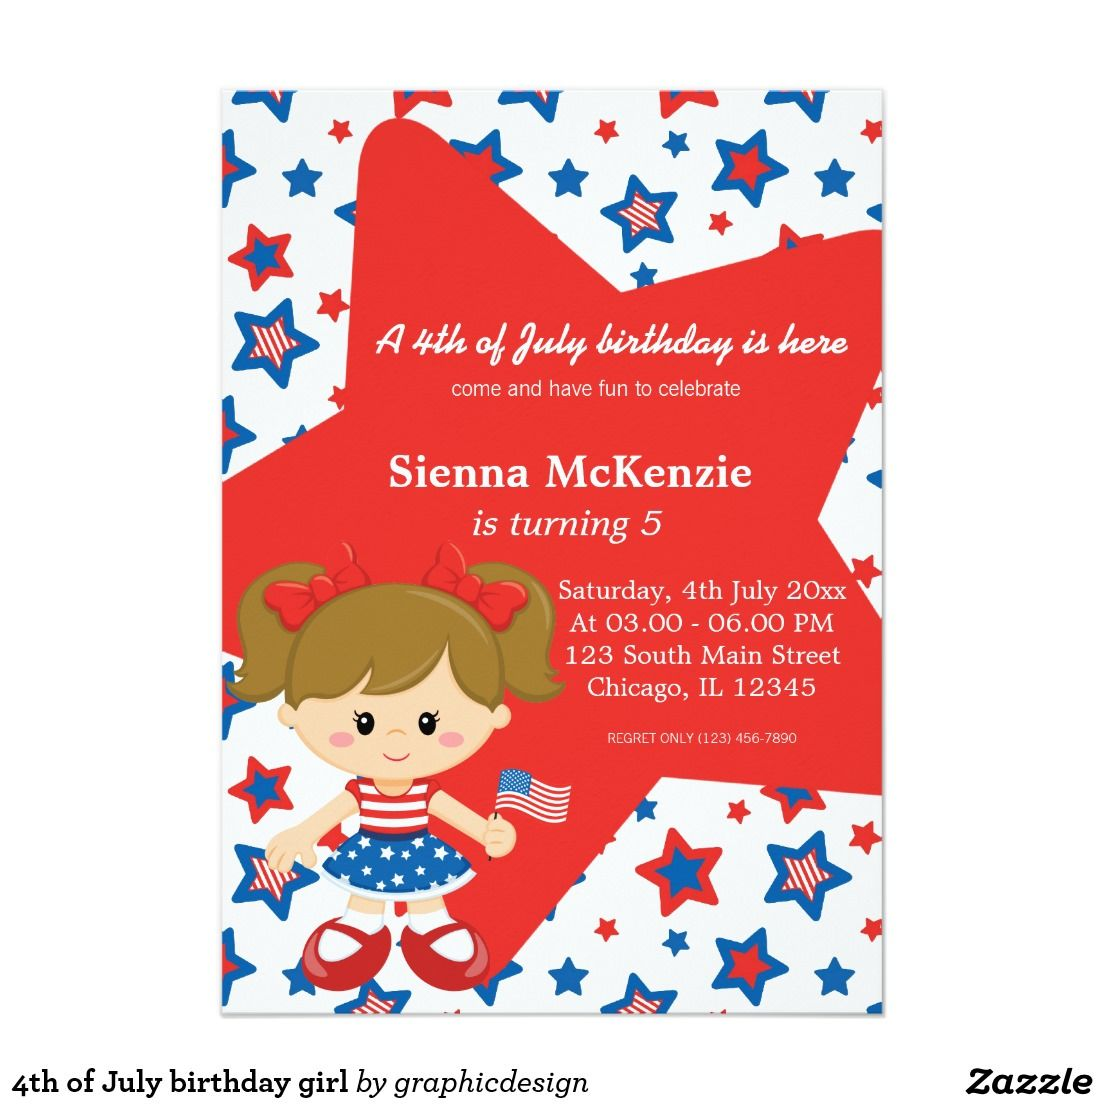 4th of July birthday girl Invitation   Deluxephotos All Kinds of ...